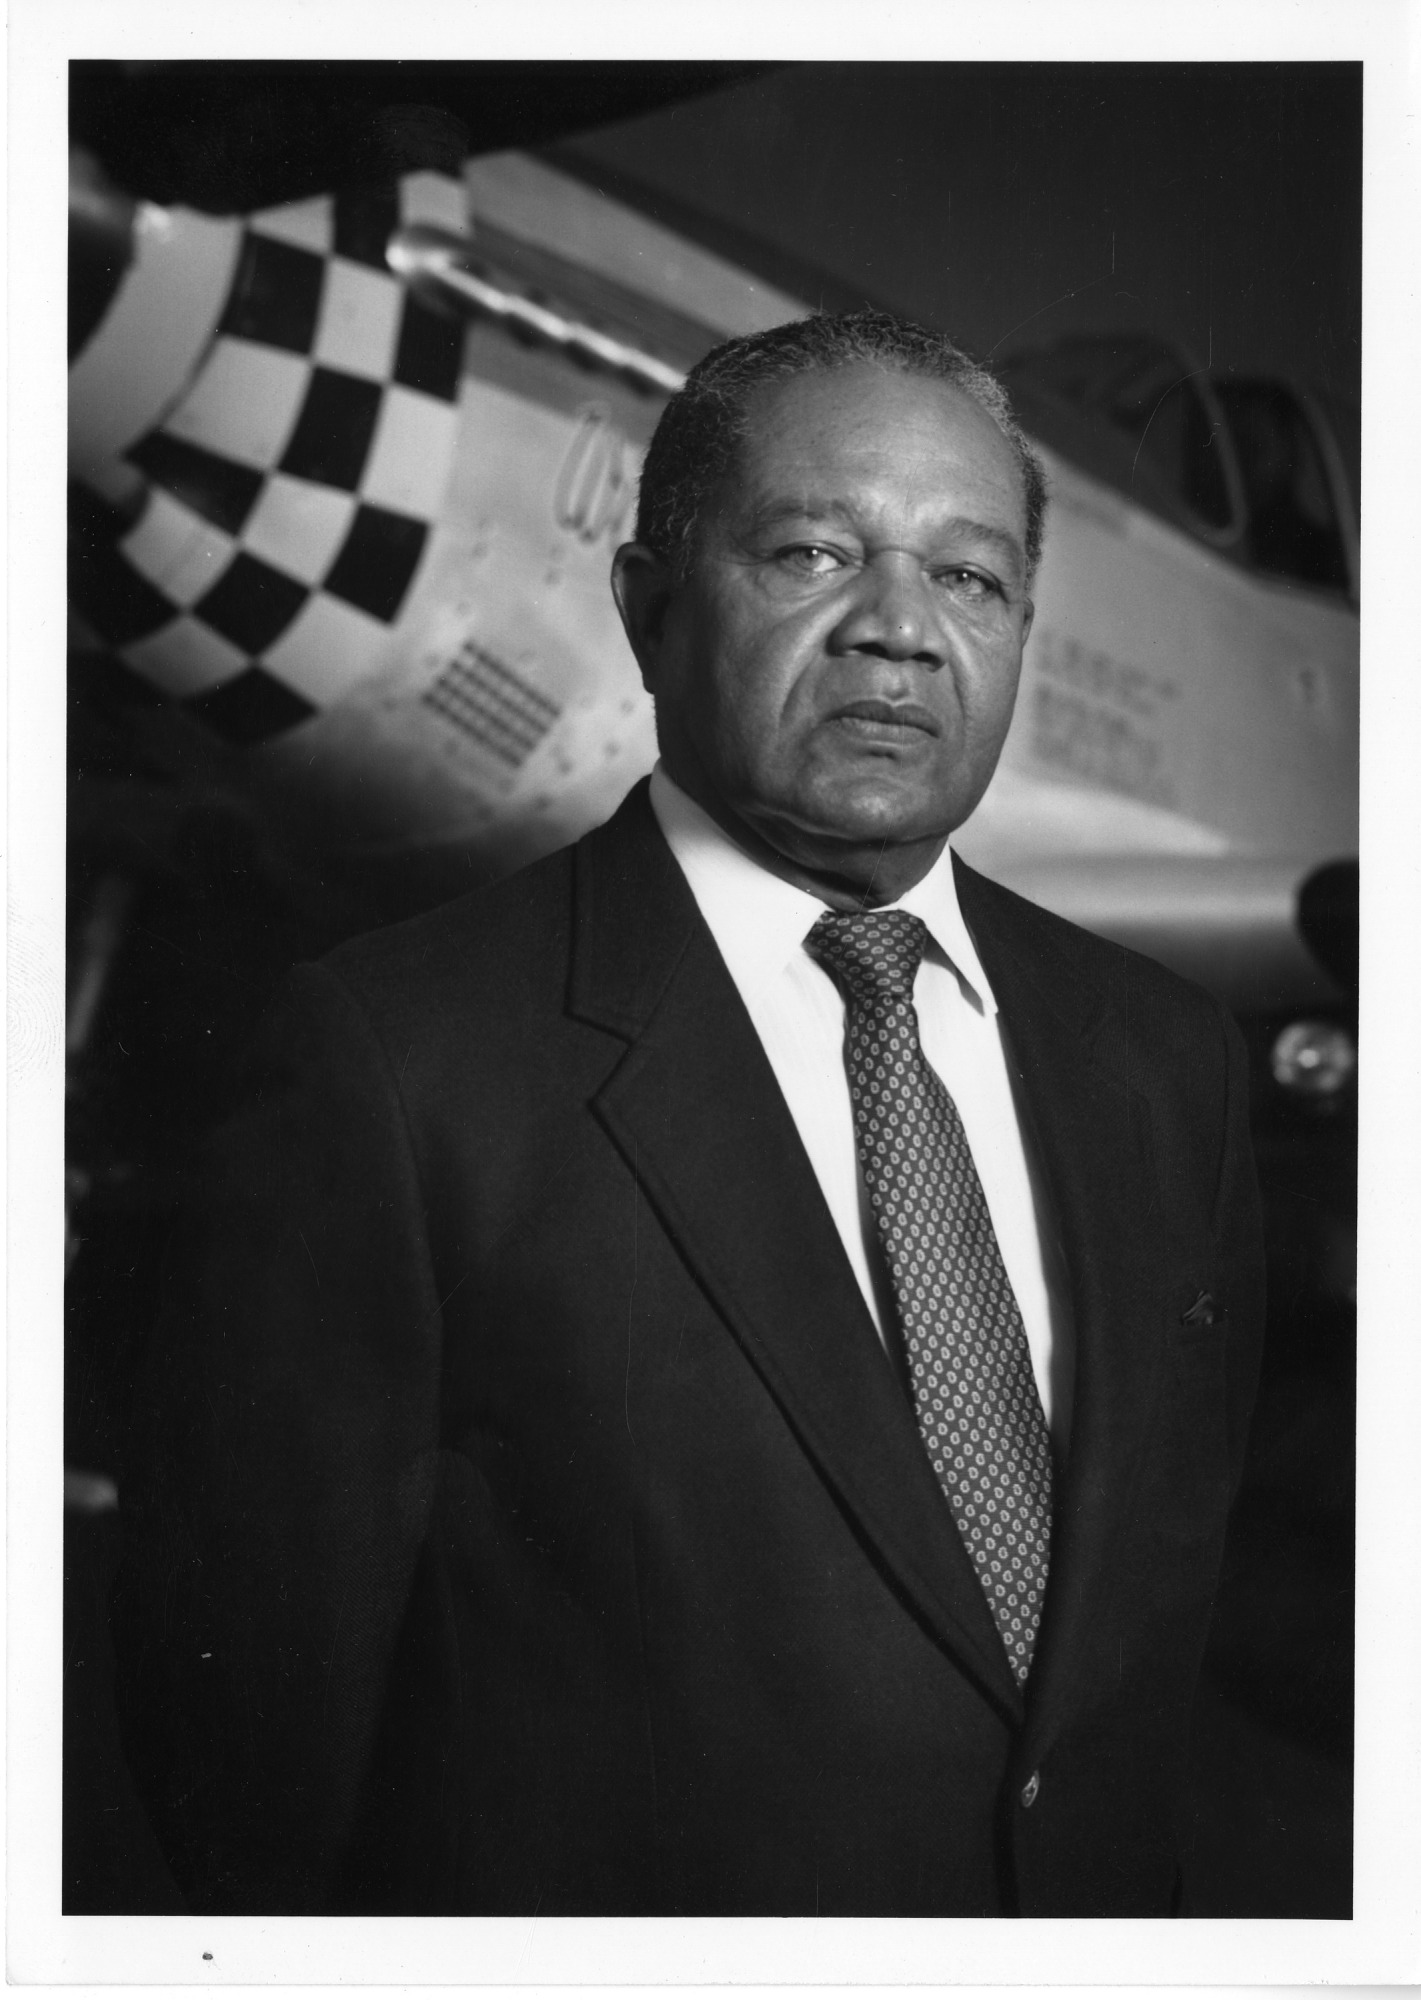 Louis R. Purnell, Jr., Curator of Astronautics, in Front of Airplane at NASM